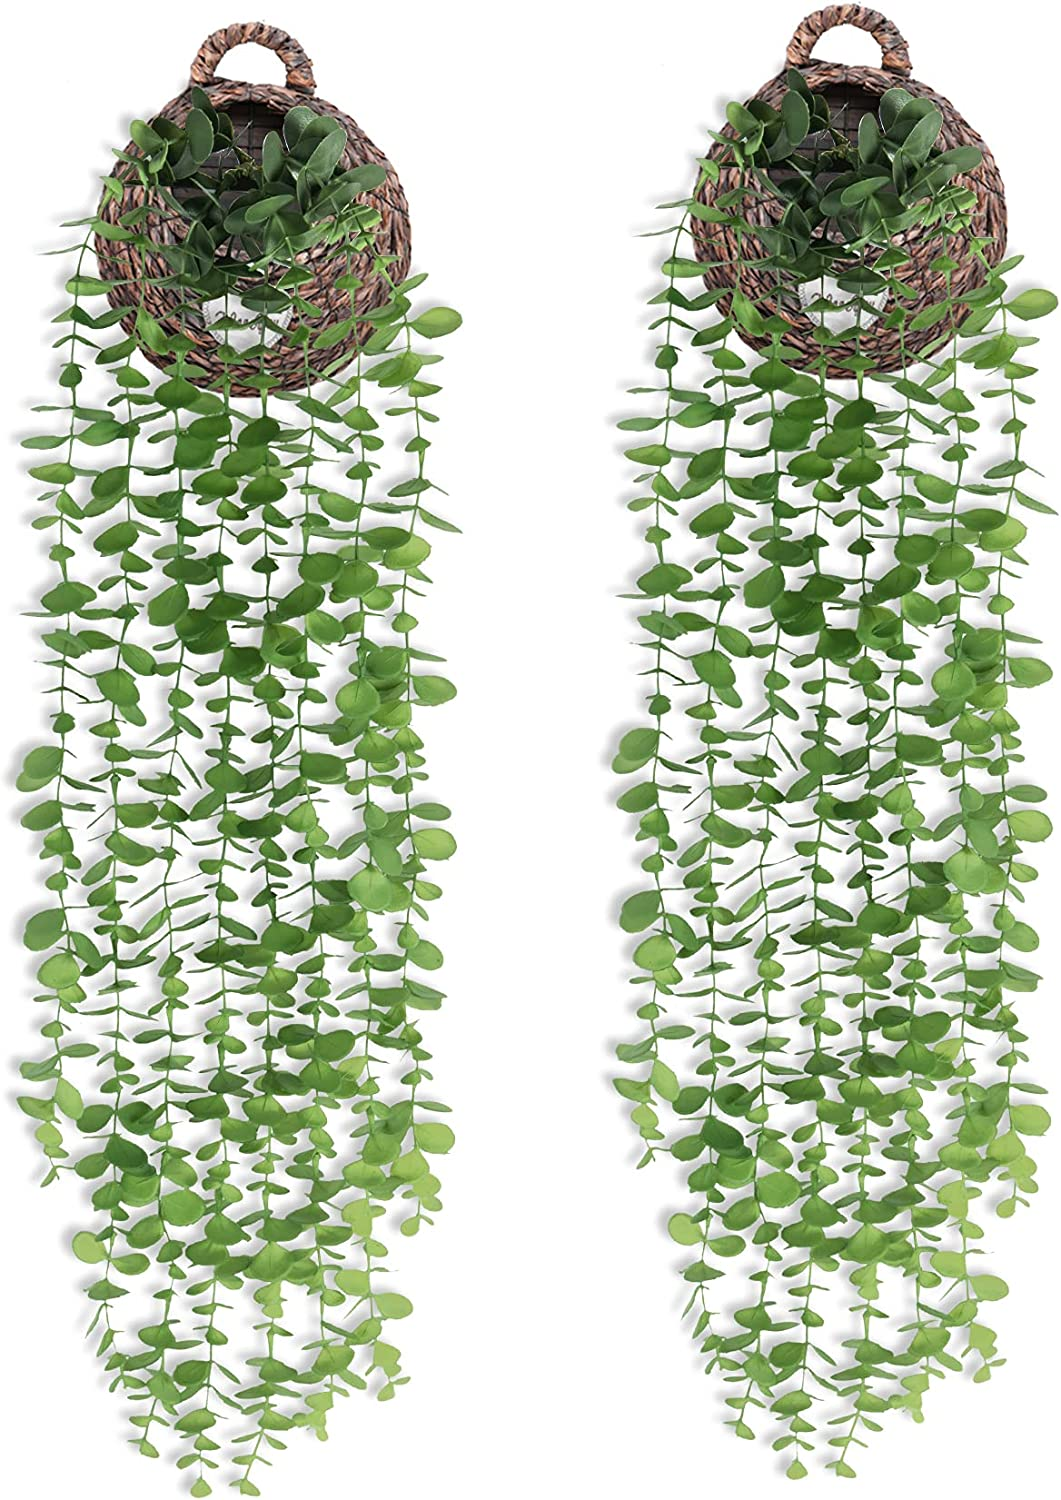 2 Pack Fake Hanging Plants Eucalyptus Garland Artificial Greenery Vines for Room Garden Home Wall Indoor Outdoor Decor (Basket Not Included)